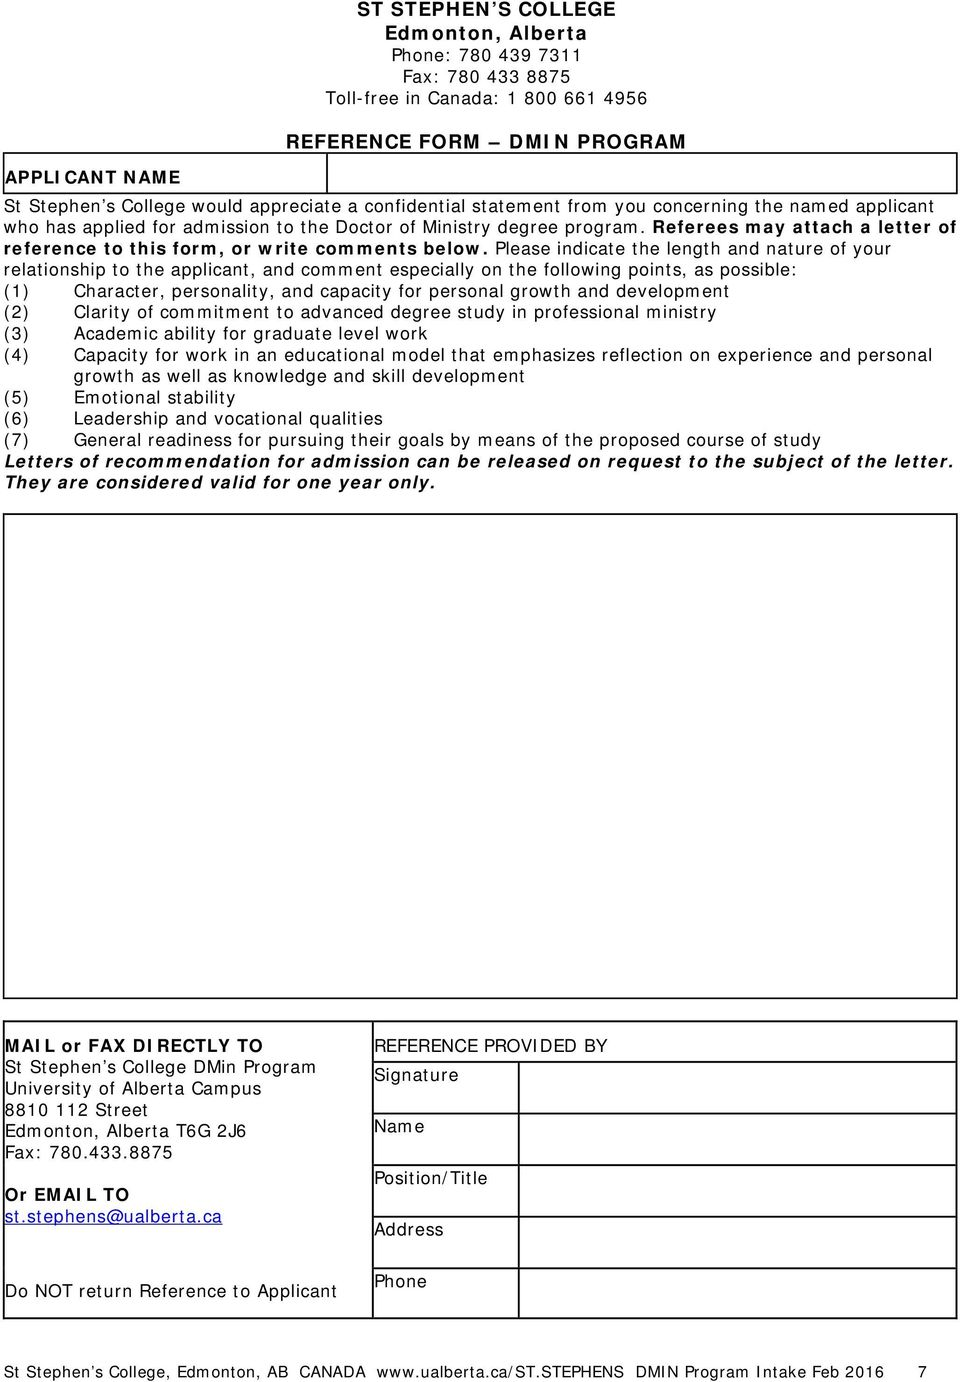 Referees may attach a letter of reference to this form, or write comments below.